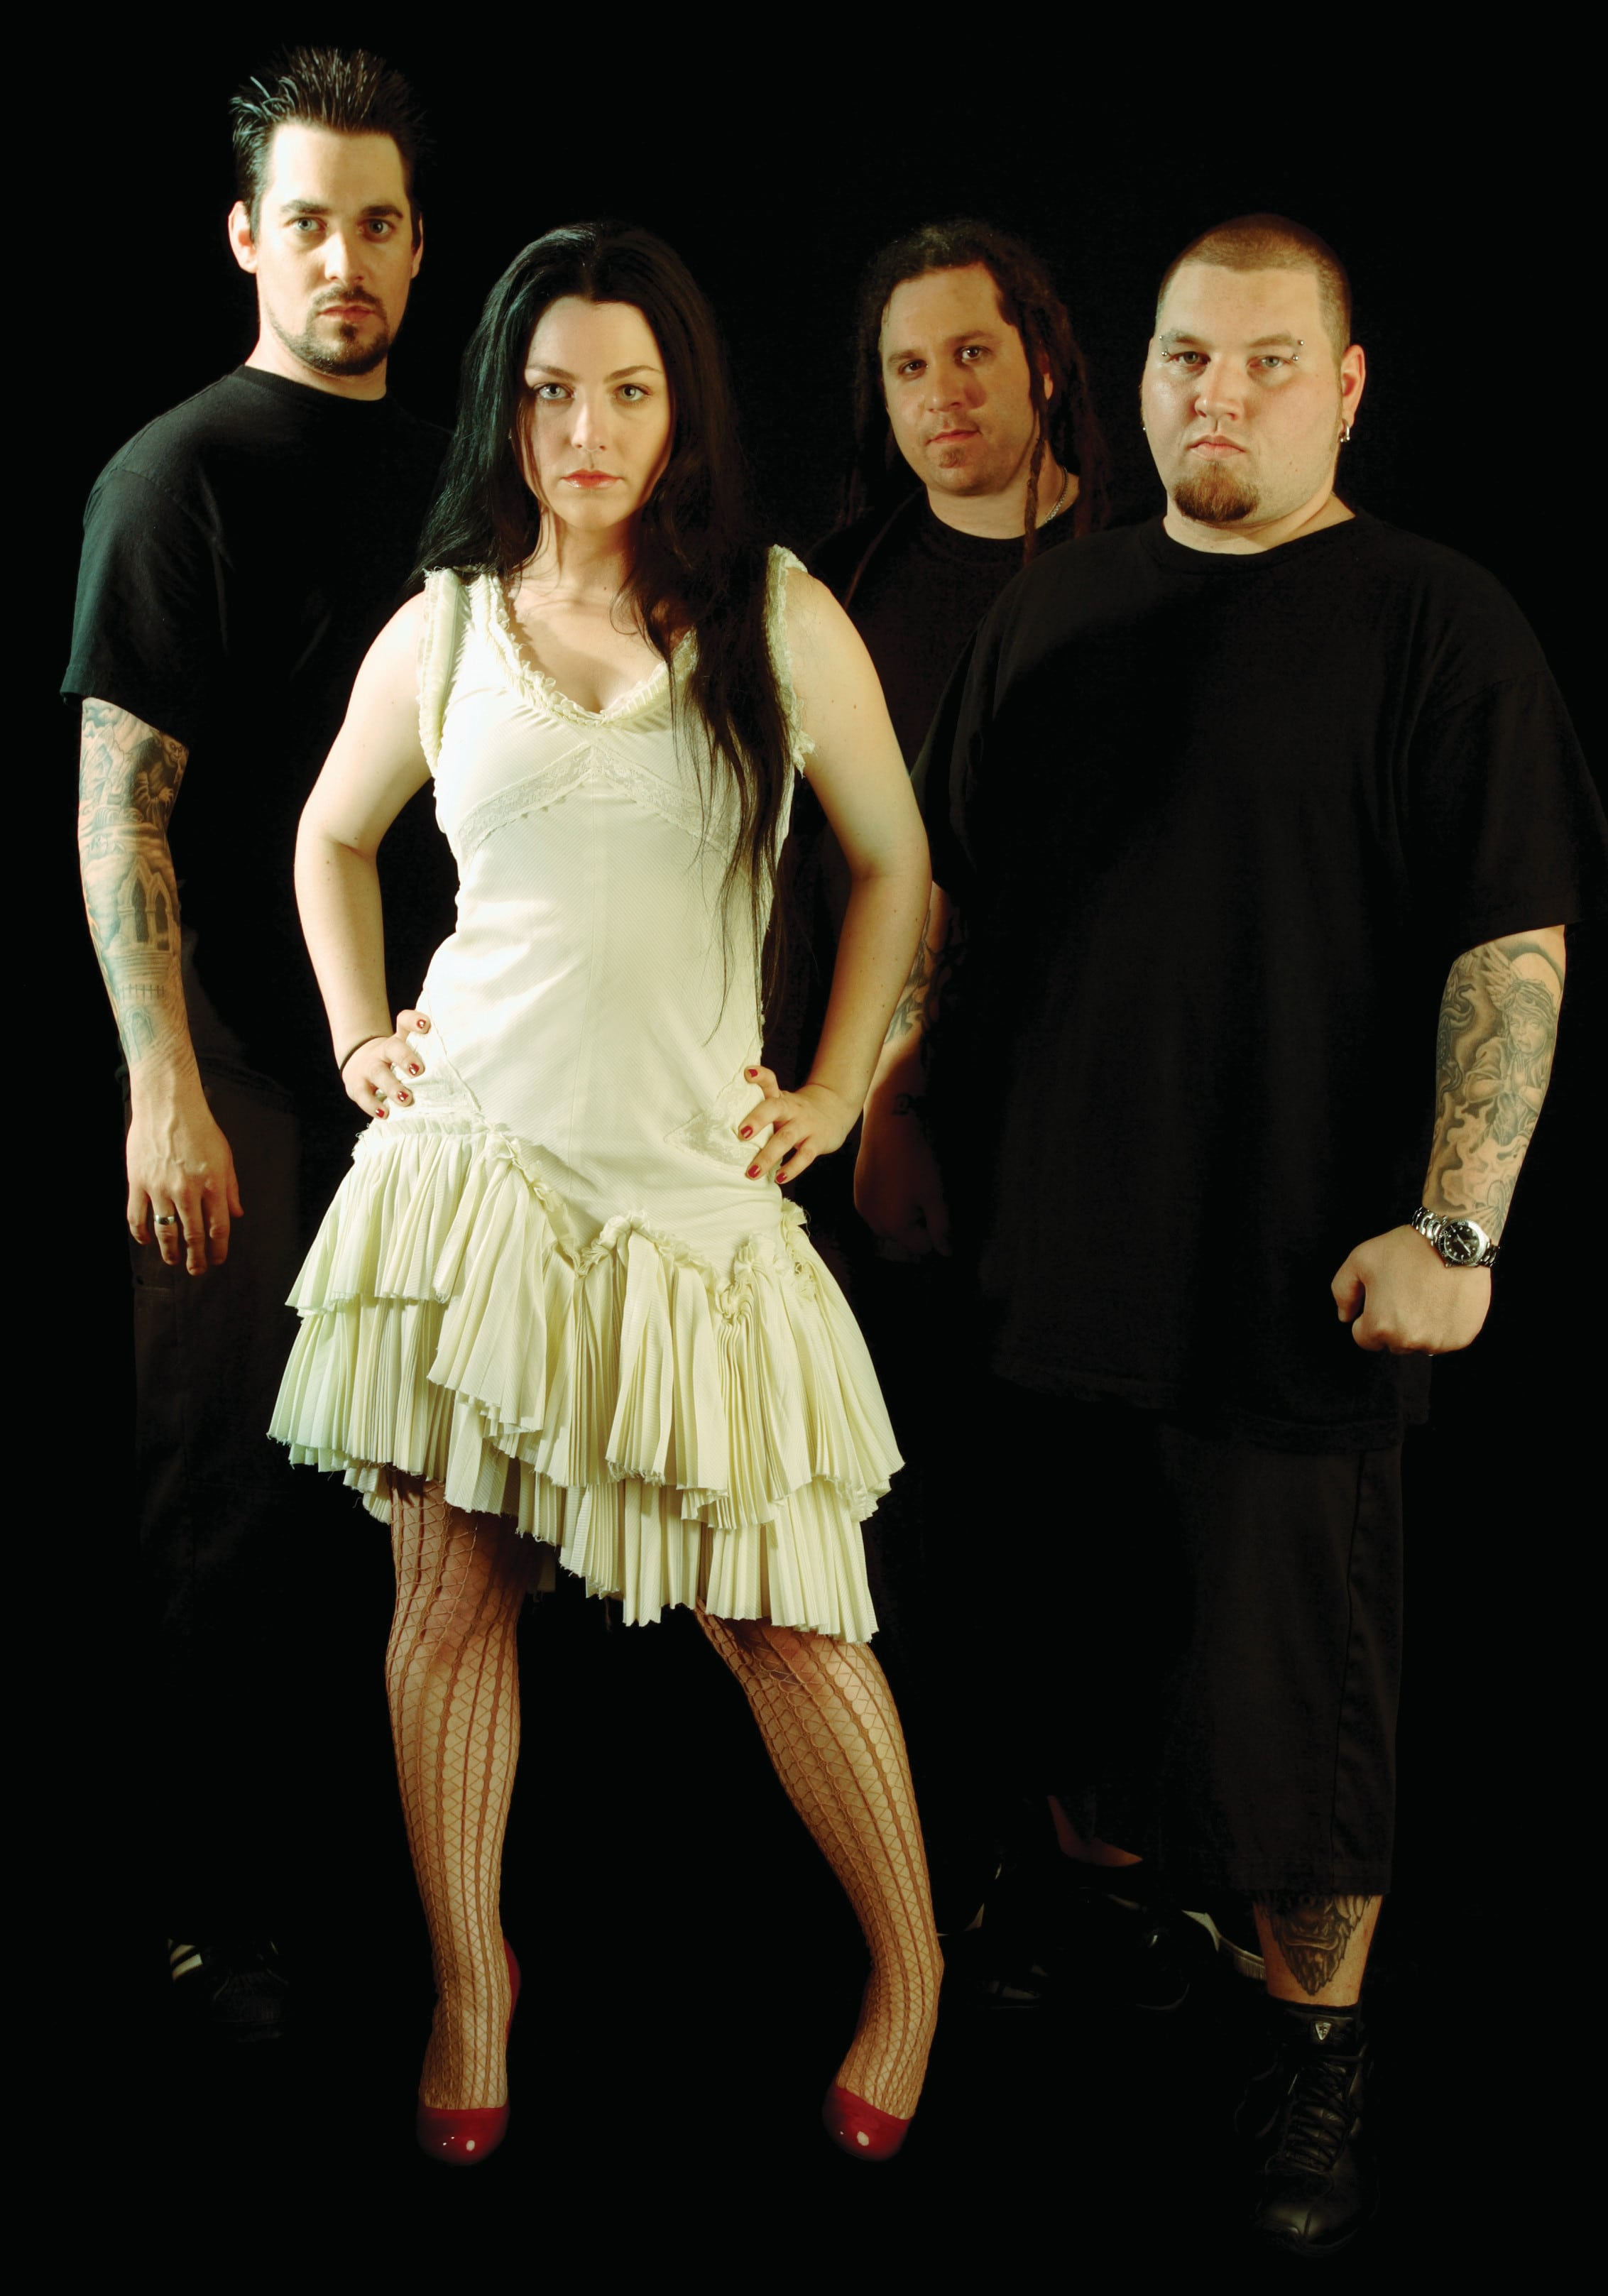 Evanescence For mobile